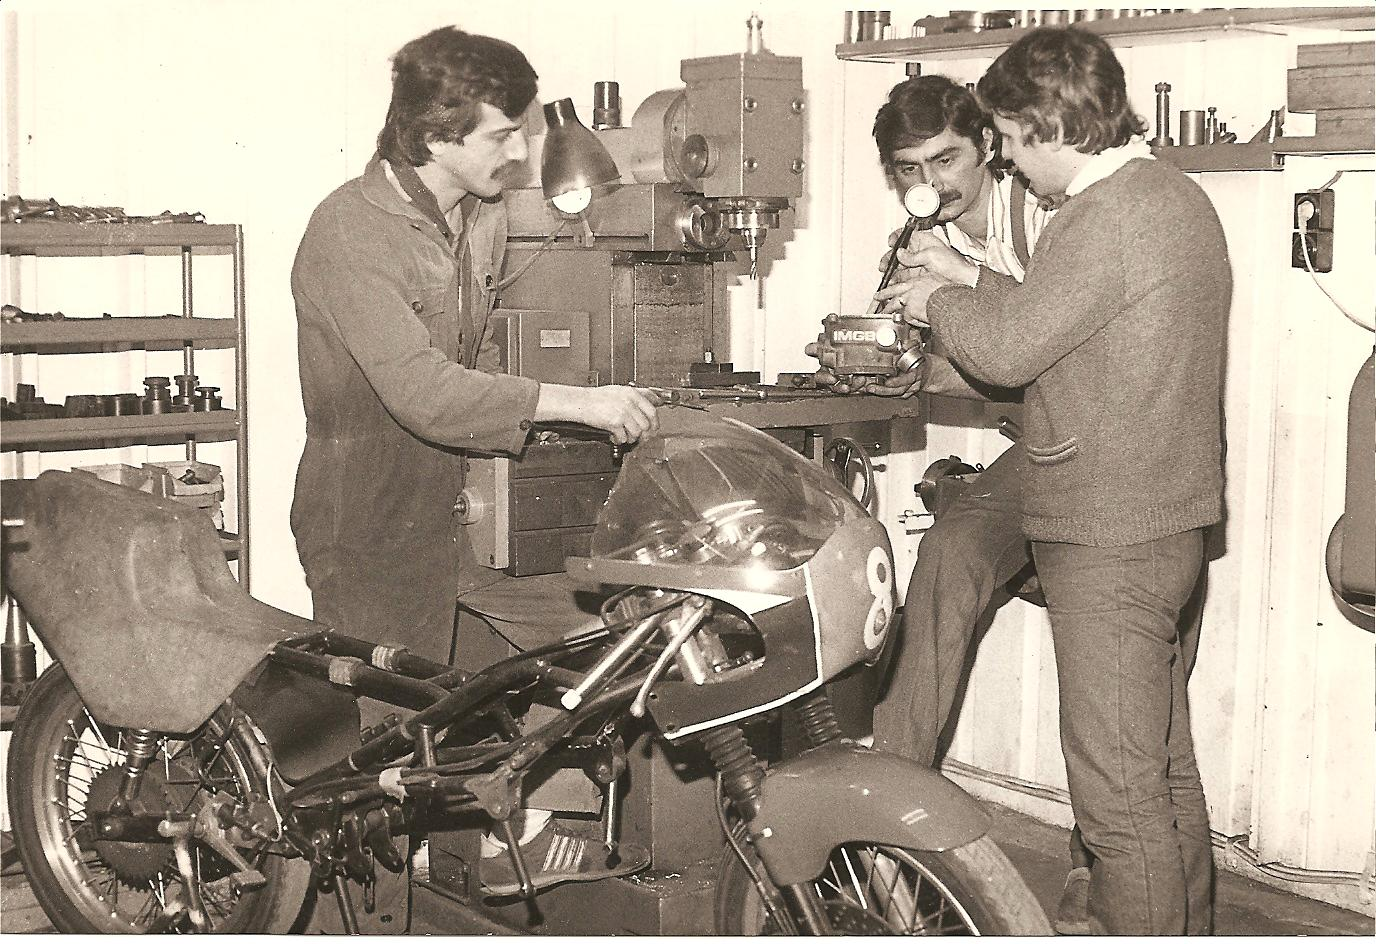 1988 - Workshop IMGB Team - Bucharest